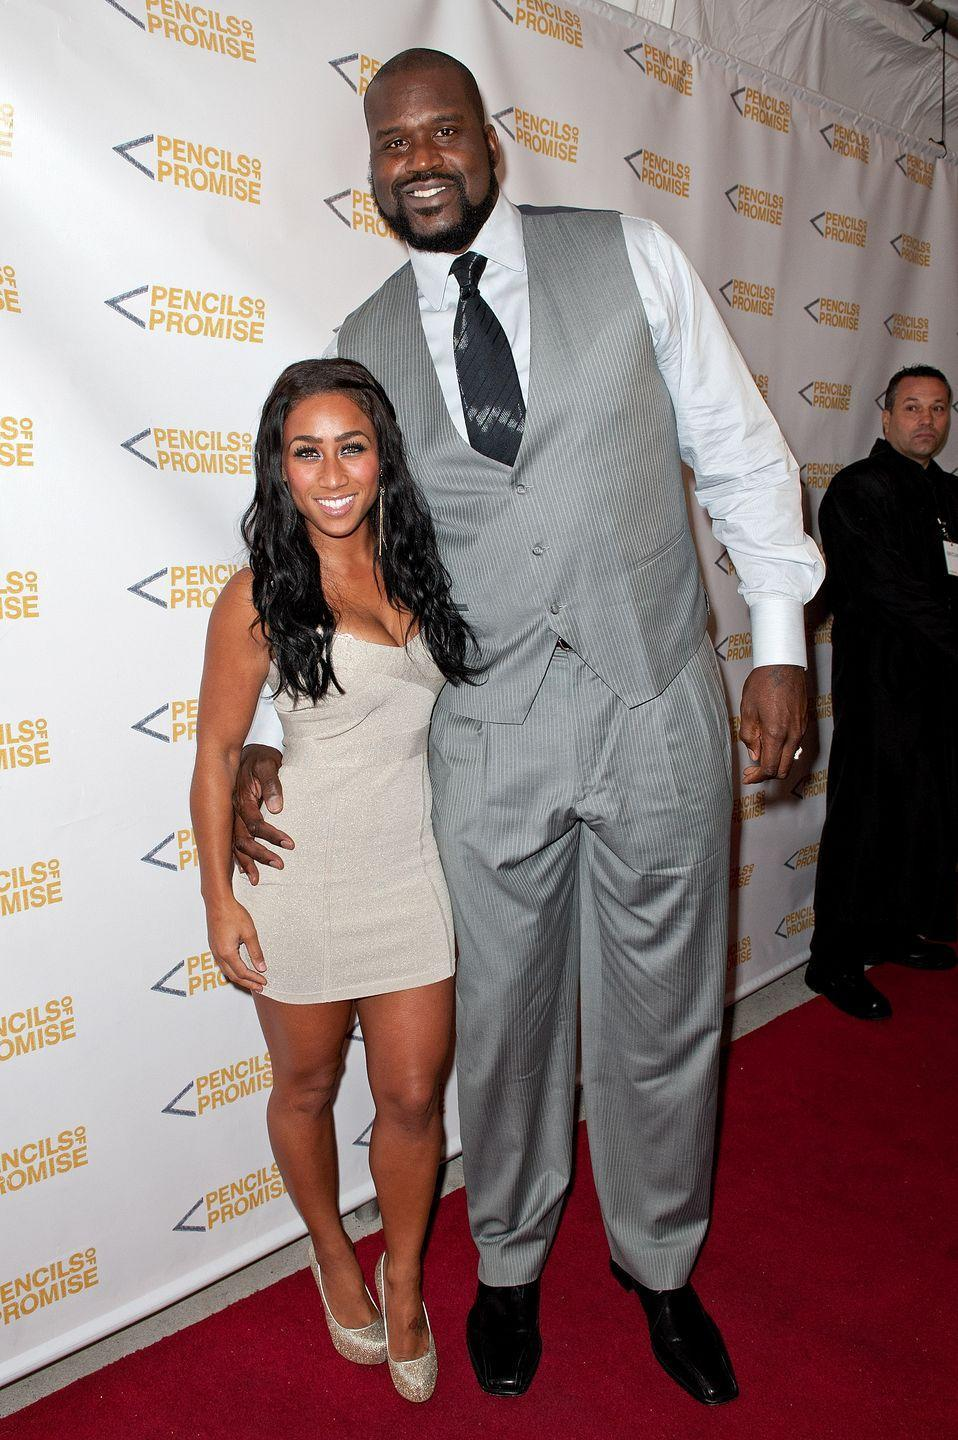 """<p><strong>Her: </strong>5'2"""" </p><p><strong>Him: </strong>7'1"""" </p><p><strong>Difference: </strong>23 inches</p>"""